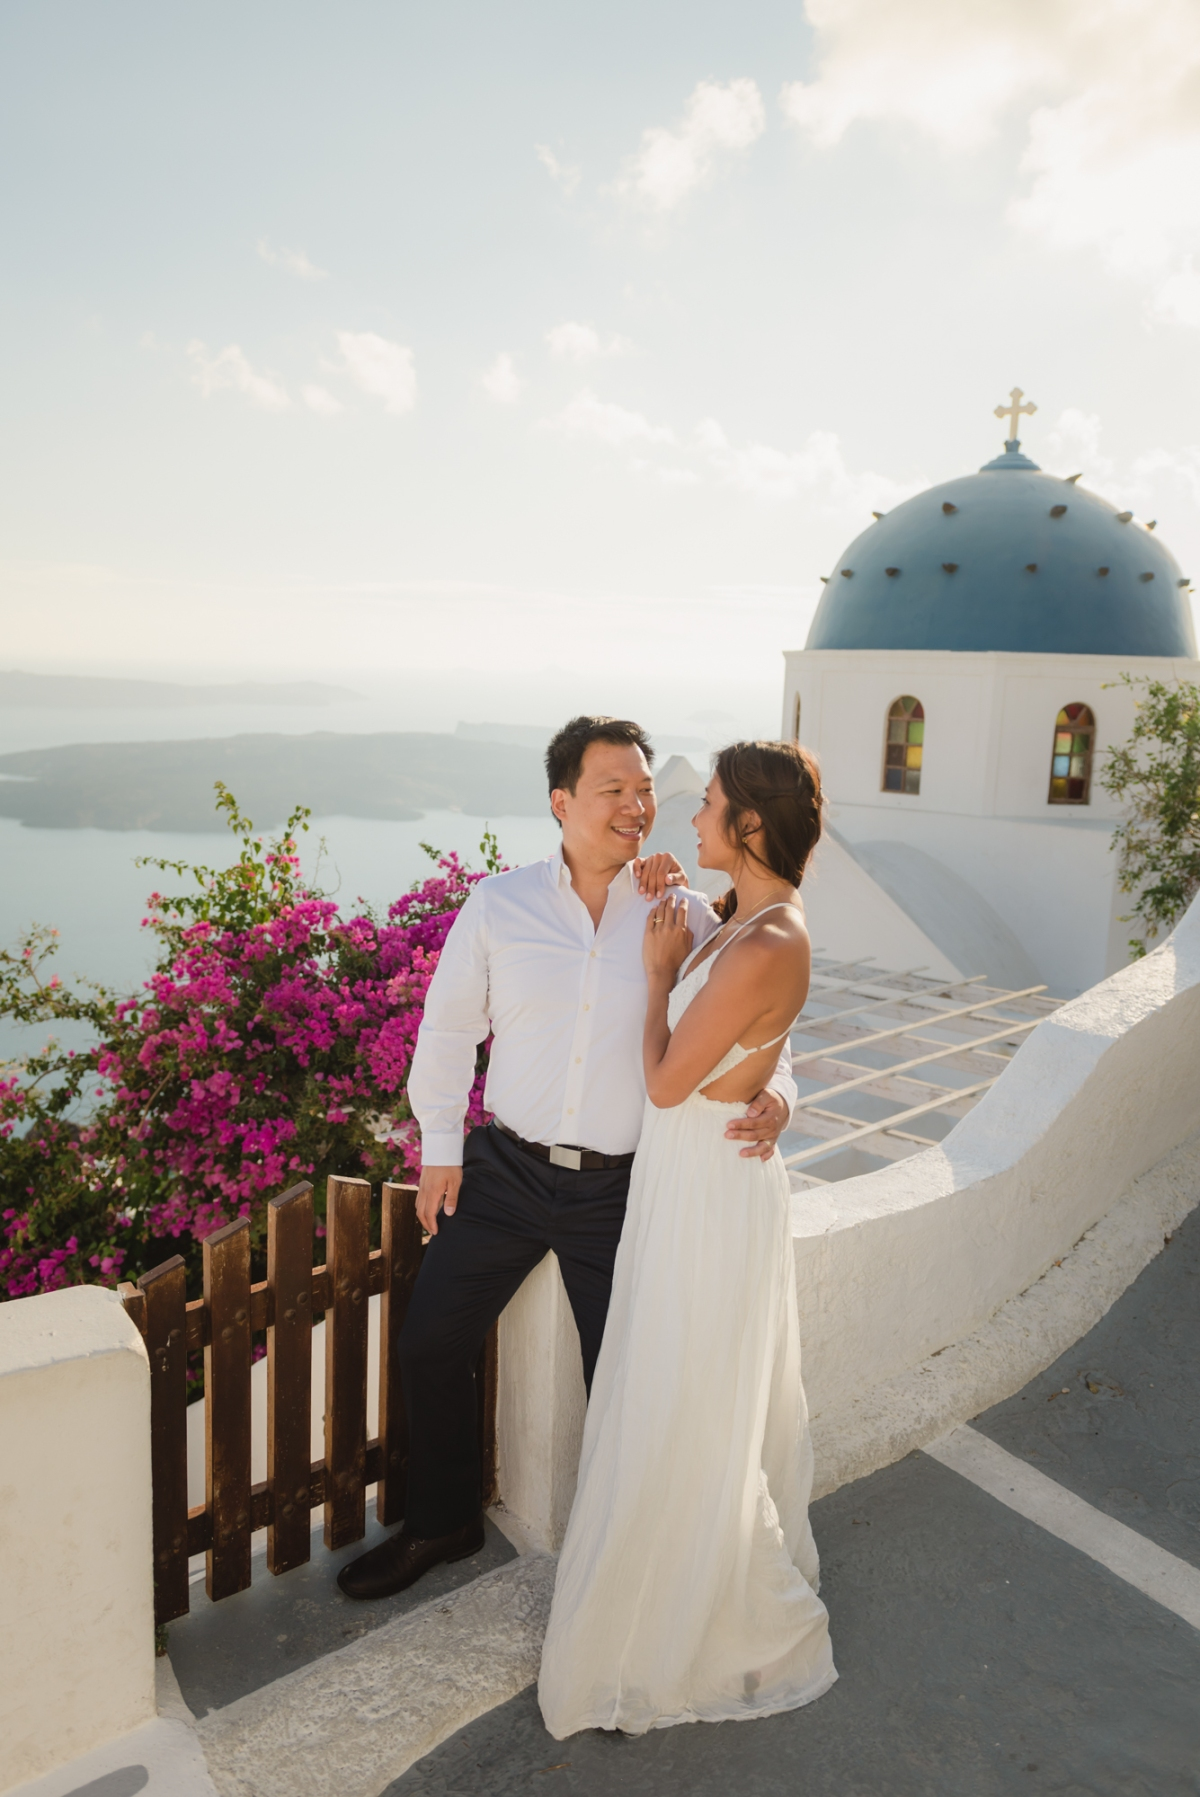 Santorini-photo-session-photographer-Anna-Sulte-003